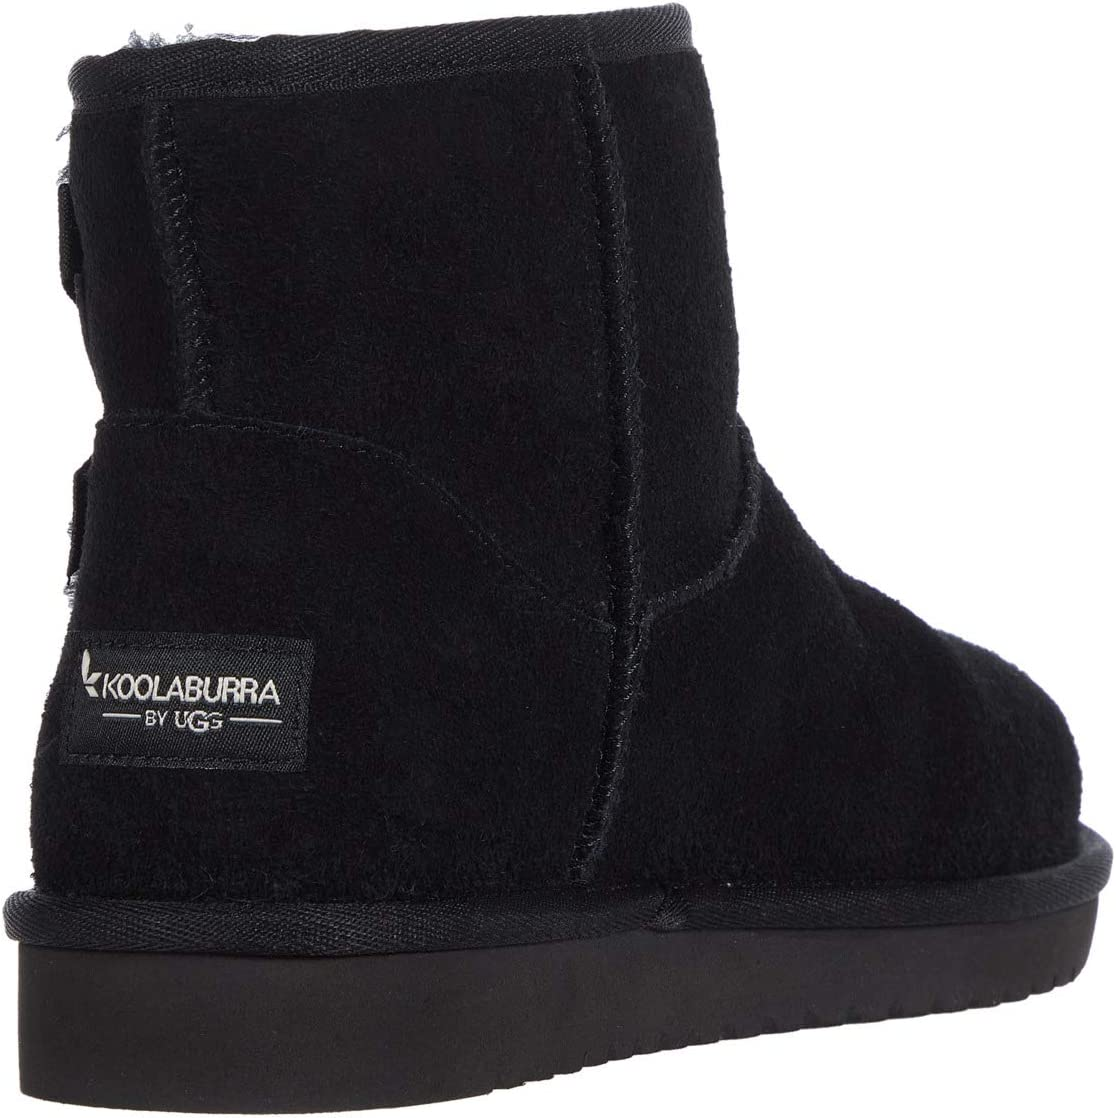 Koolaburra by UGG Victoria Mini | Women's shoes | 2020 Newest